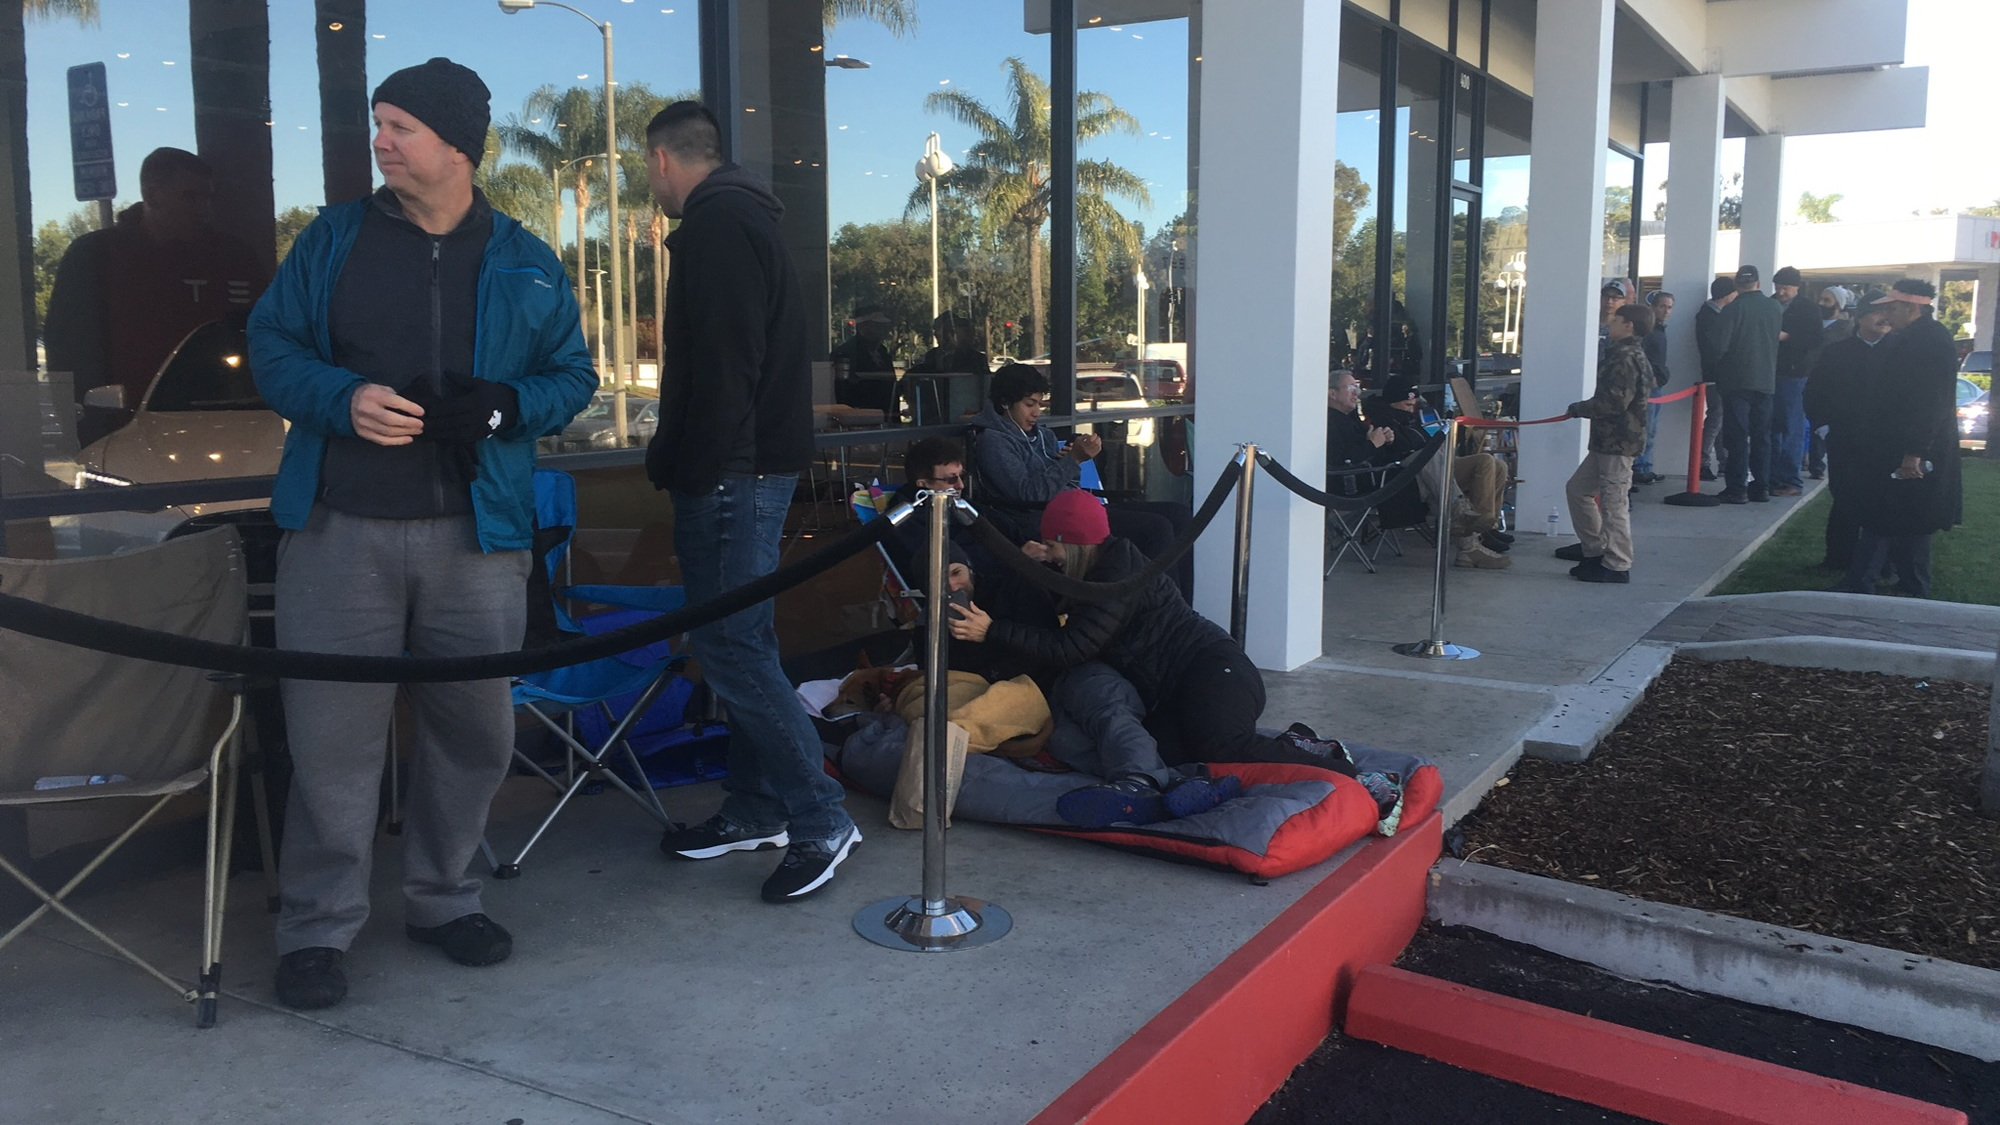 Buyers waiting to reserve Model 3 electric car, Tesla Store, Santa Barbara, CA [photo: David Noland]